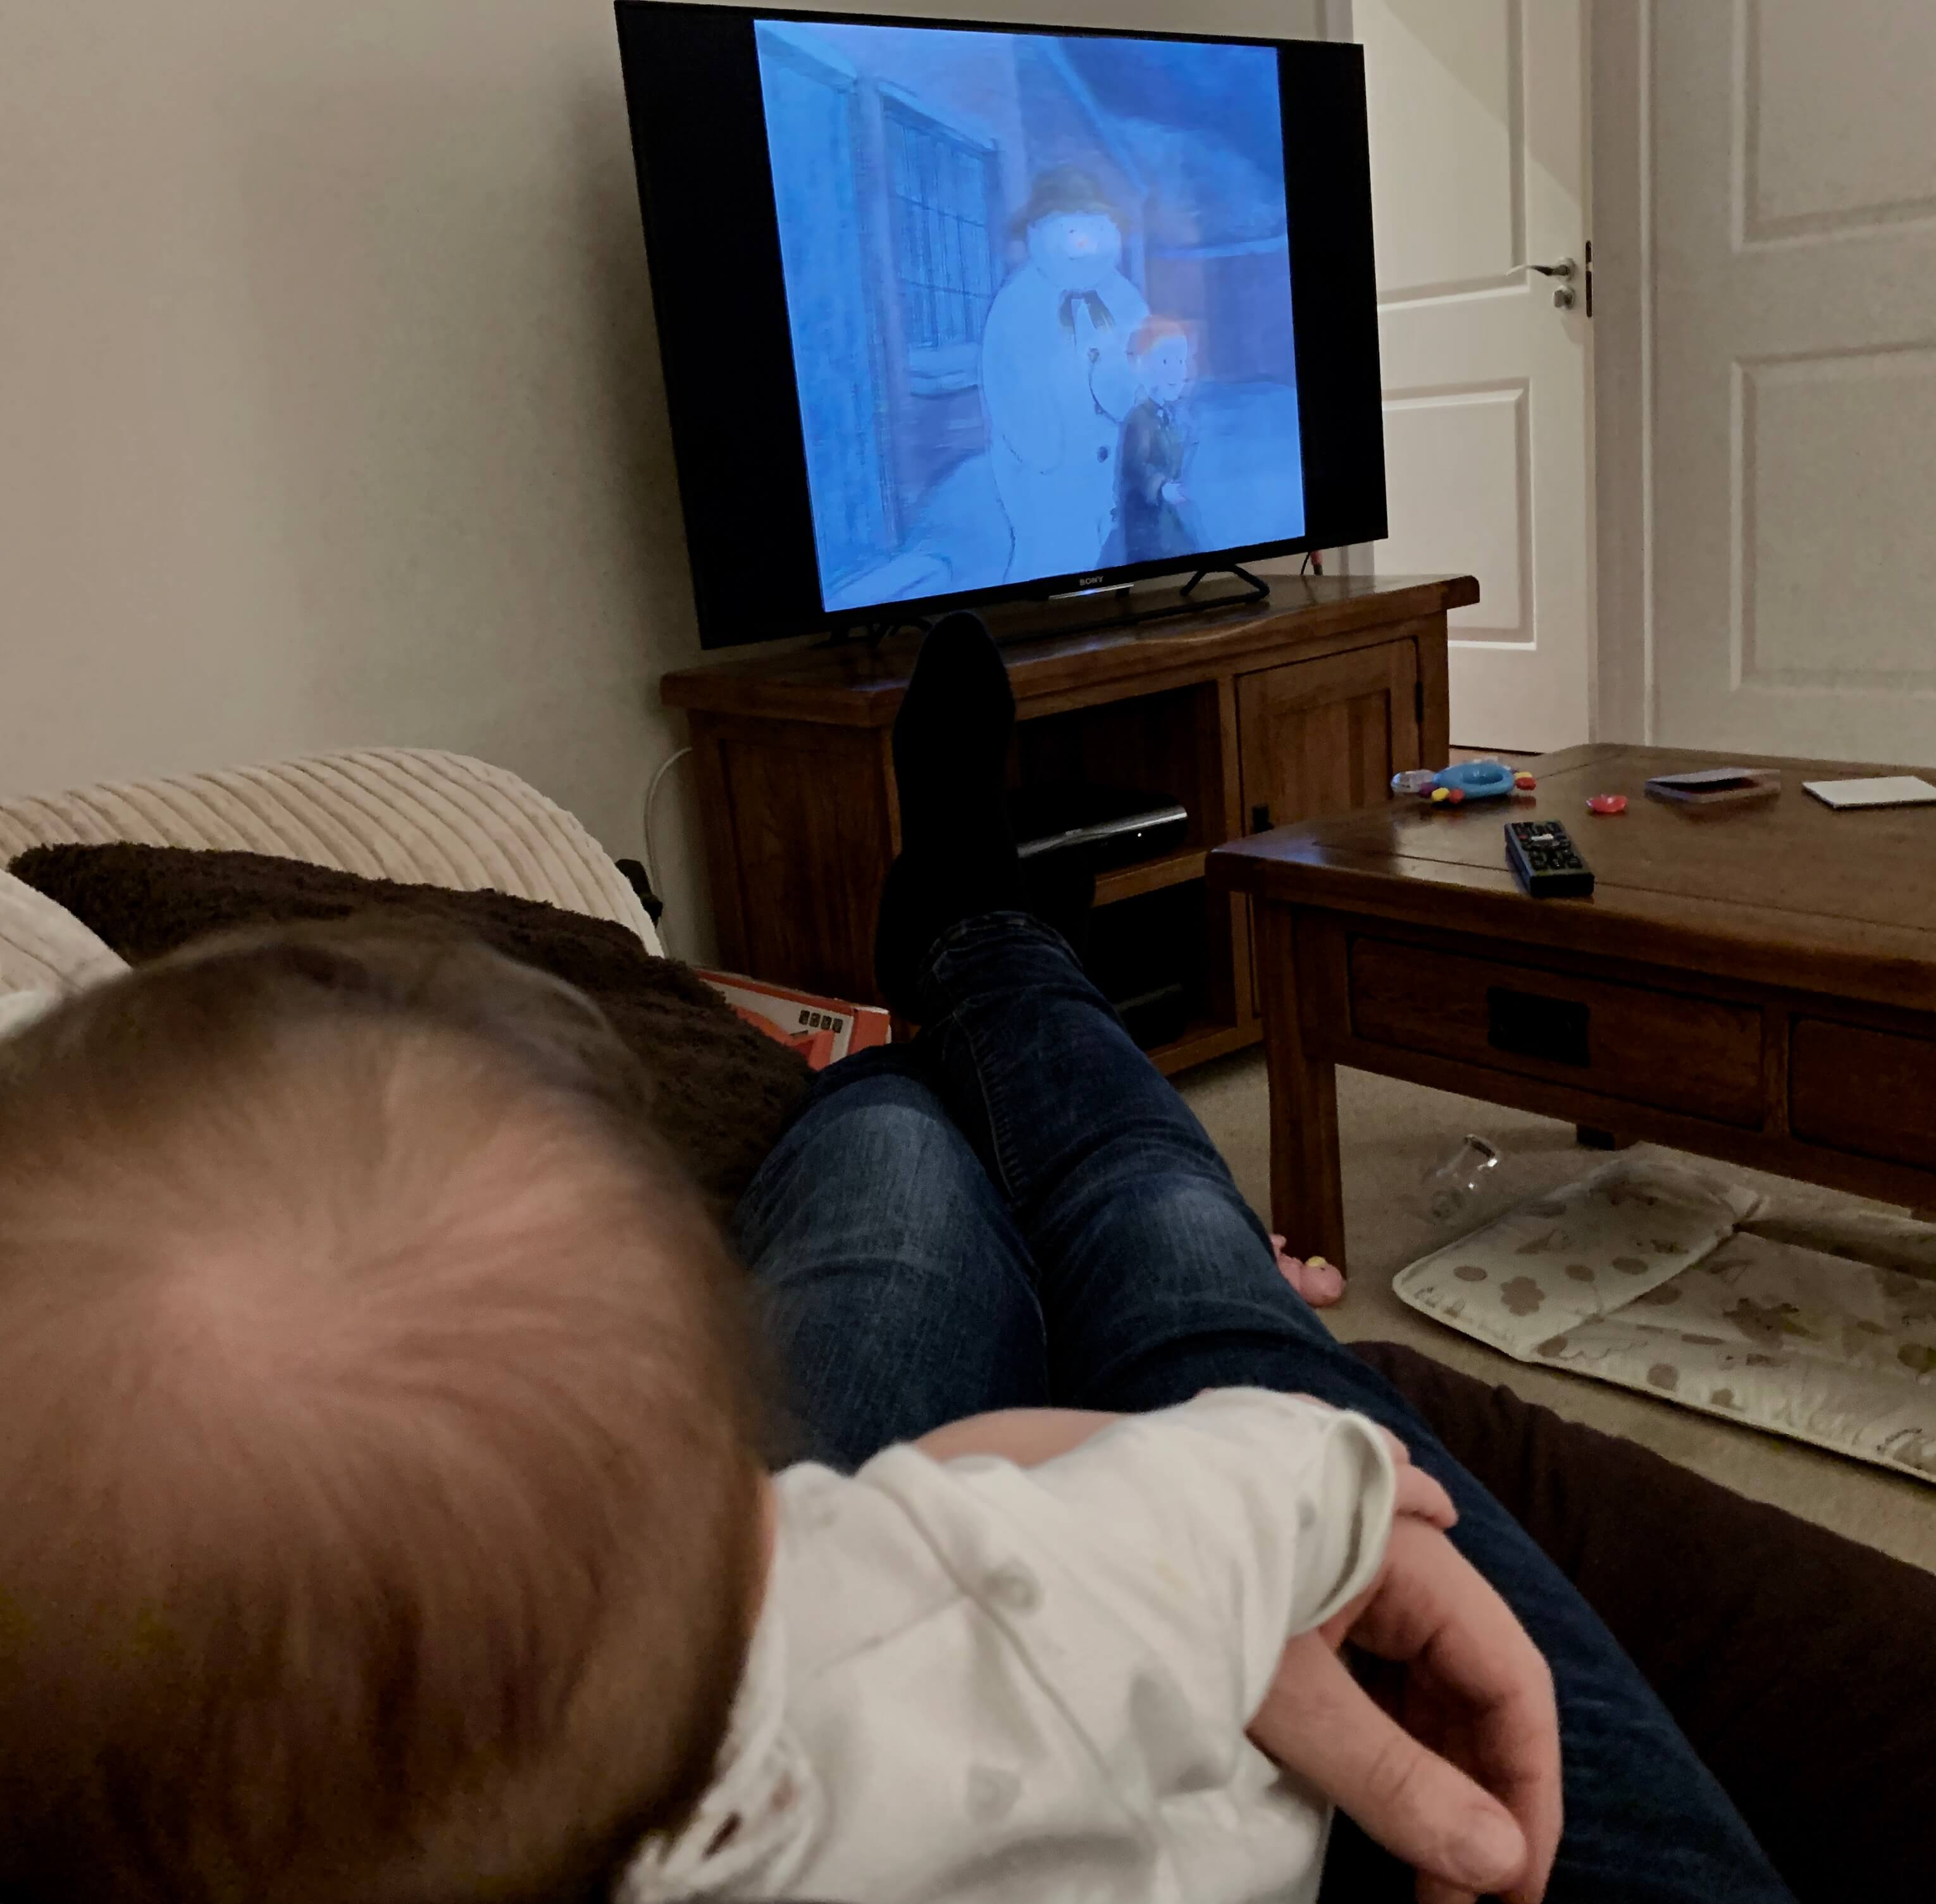 A baby in the foreground watches The Snowman in the background